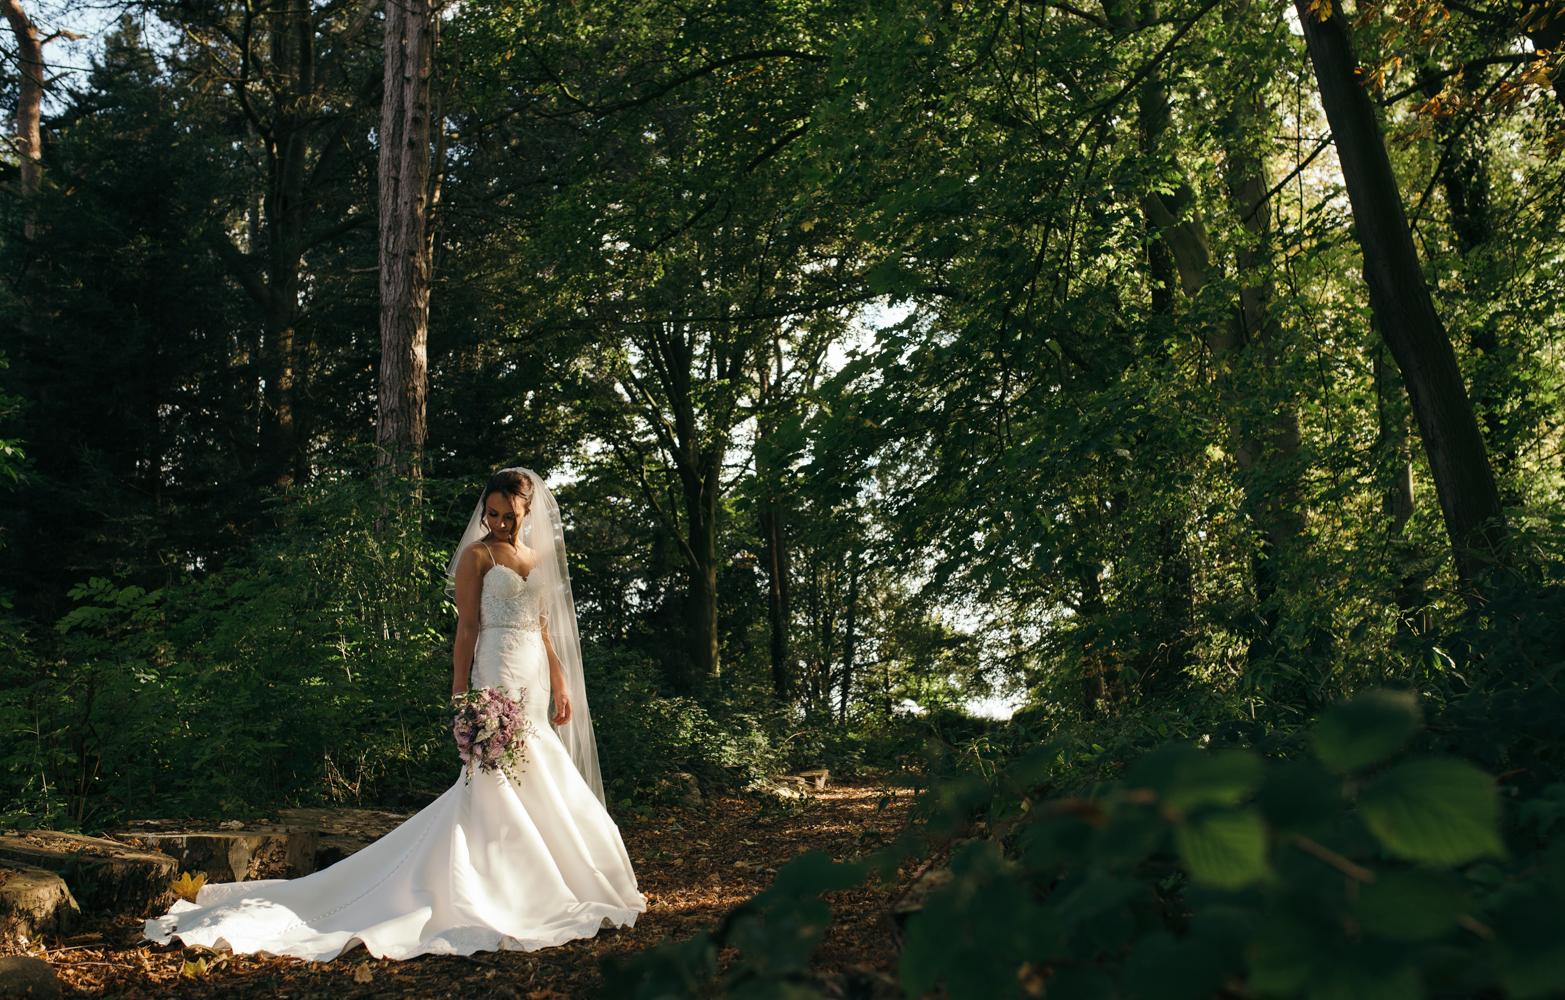 The bride on her own during the couples portrait session